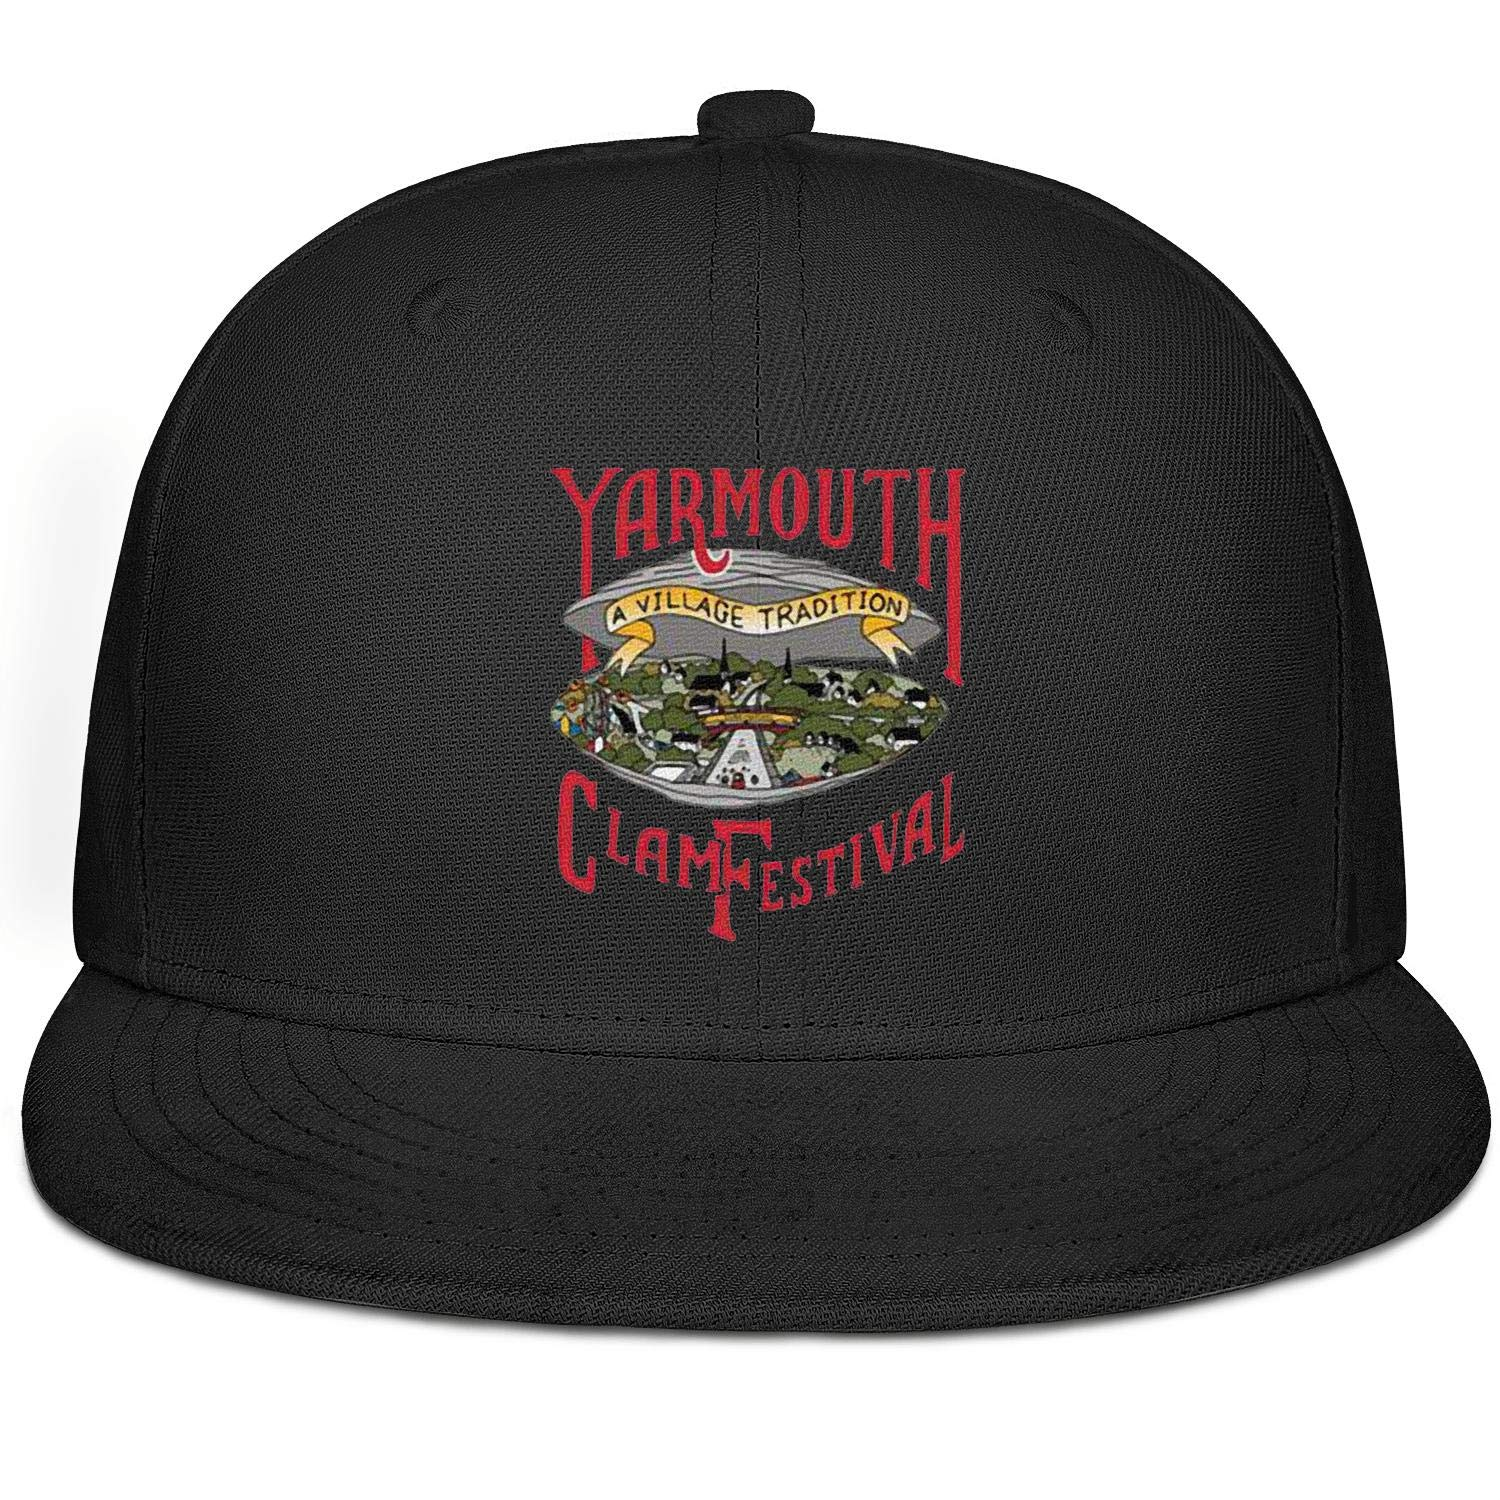 Yarmouth Clam Festival Red Baseball Caps Limited Edition Snapback Mens Adjustable Snapback Hat Flat Bill